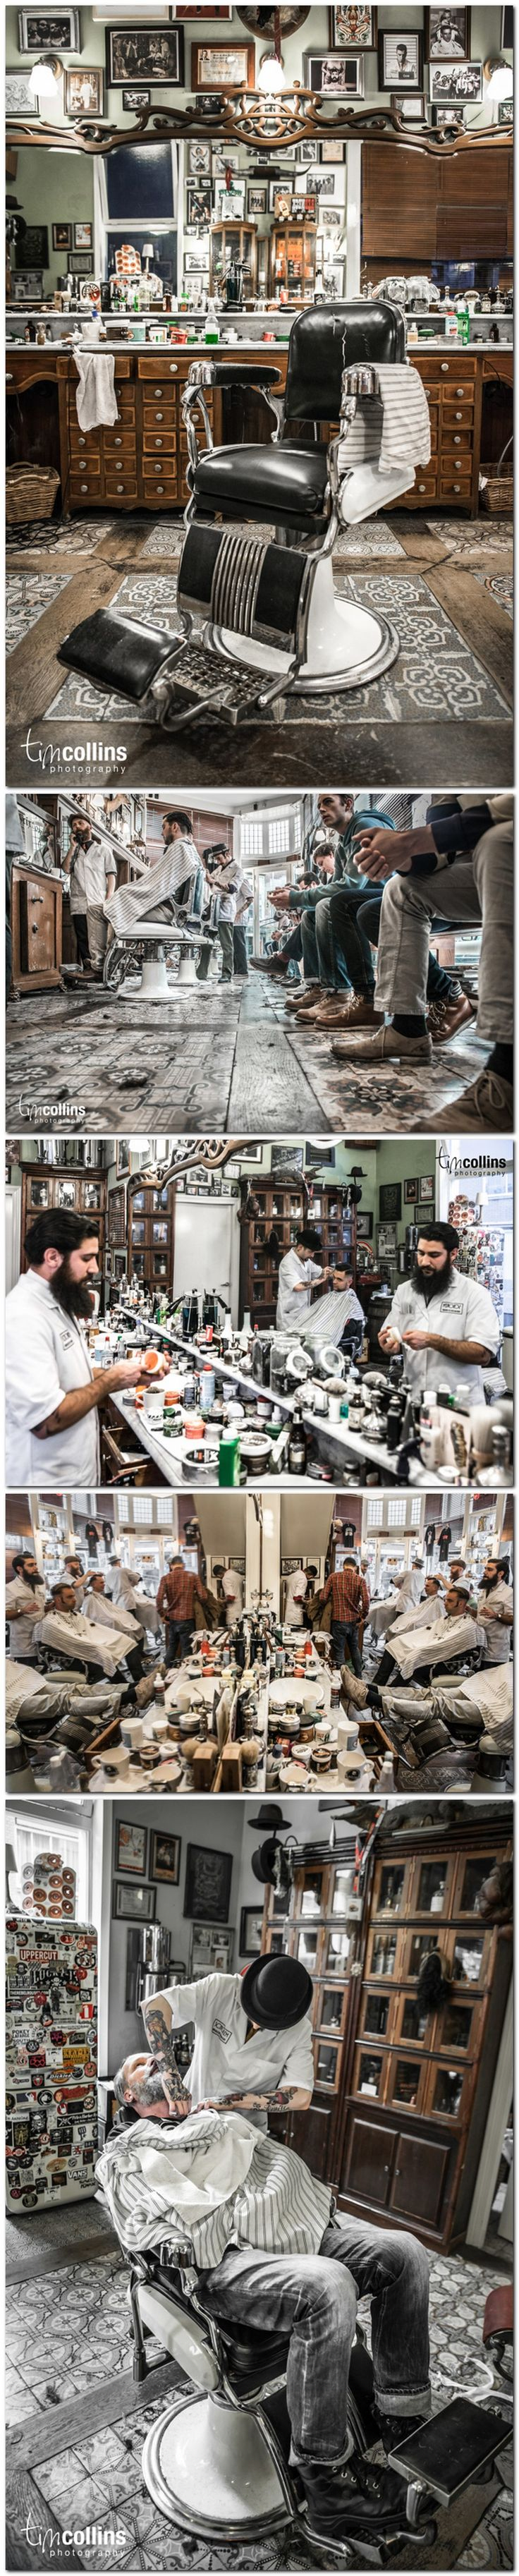 Schorem Barber Shop - Enjoy a good shave at this old school New York style barber shop, located in Hotel New York -★-